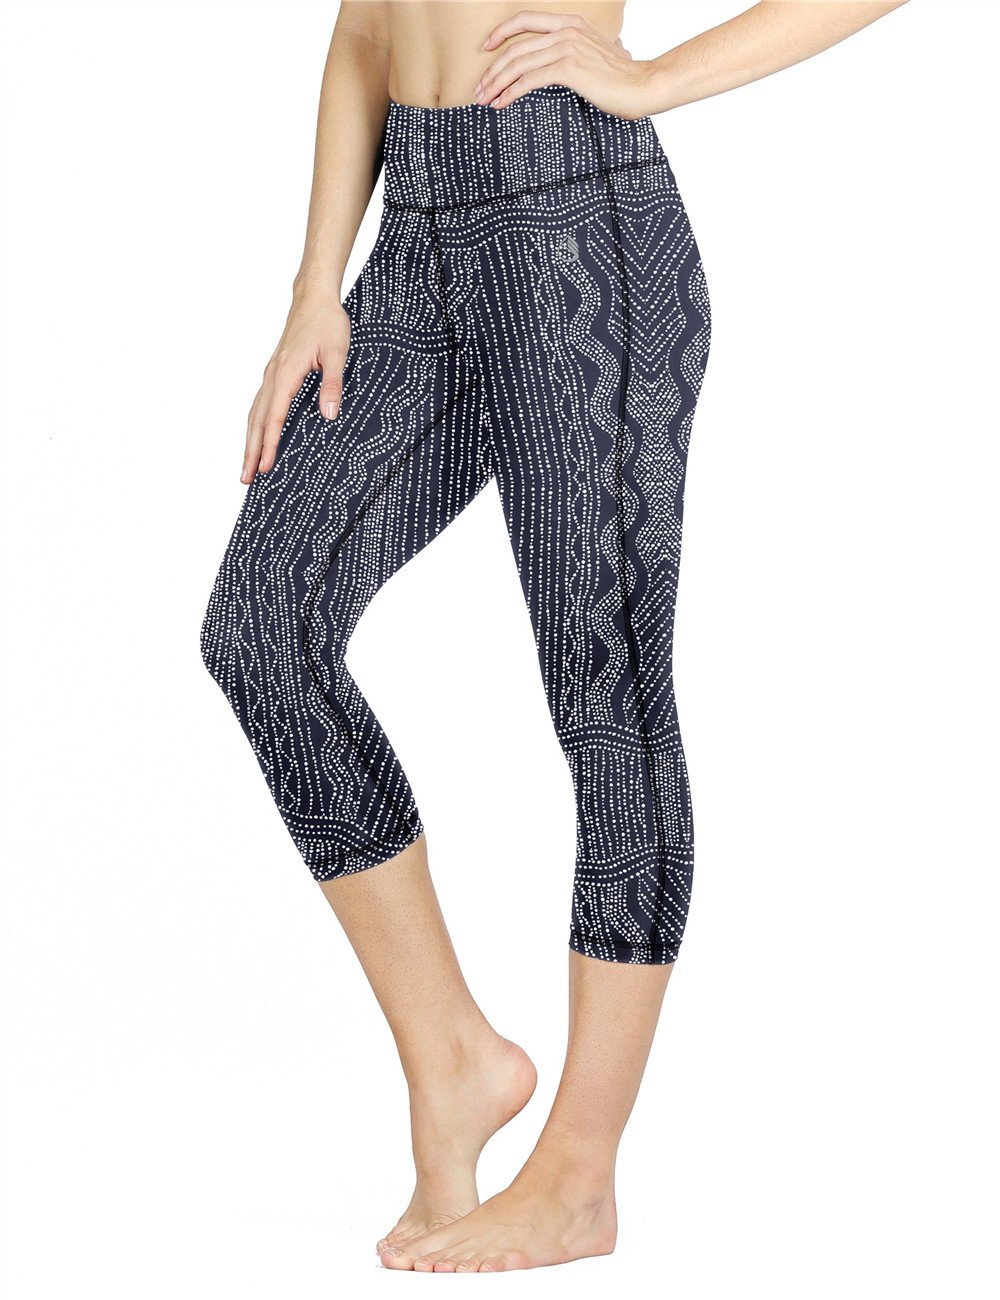 icyzone Women Workout Clothes Athletic Leggings Capri Activewear Hot Yoga Pants(M, Graphic Beads)